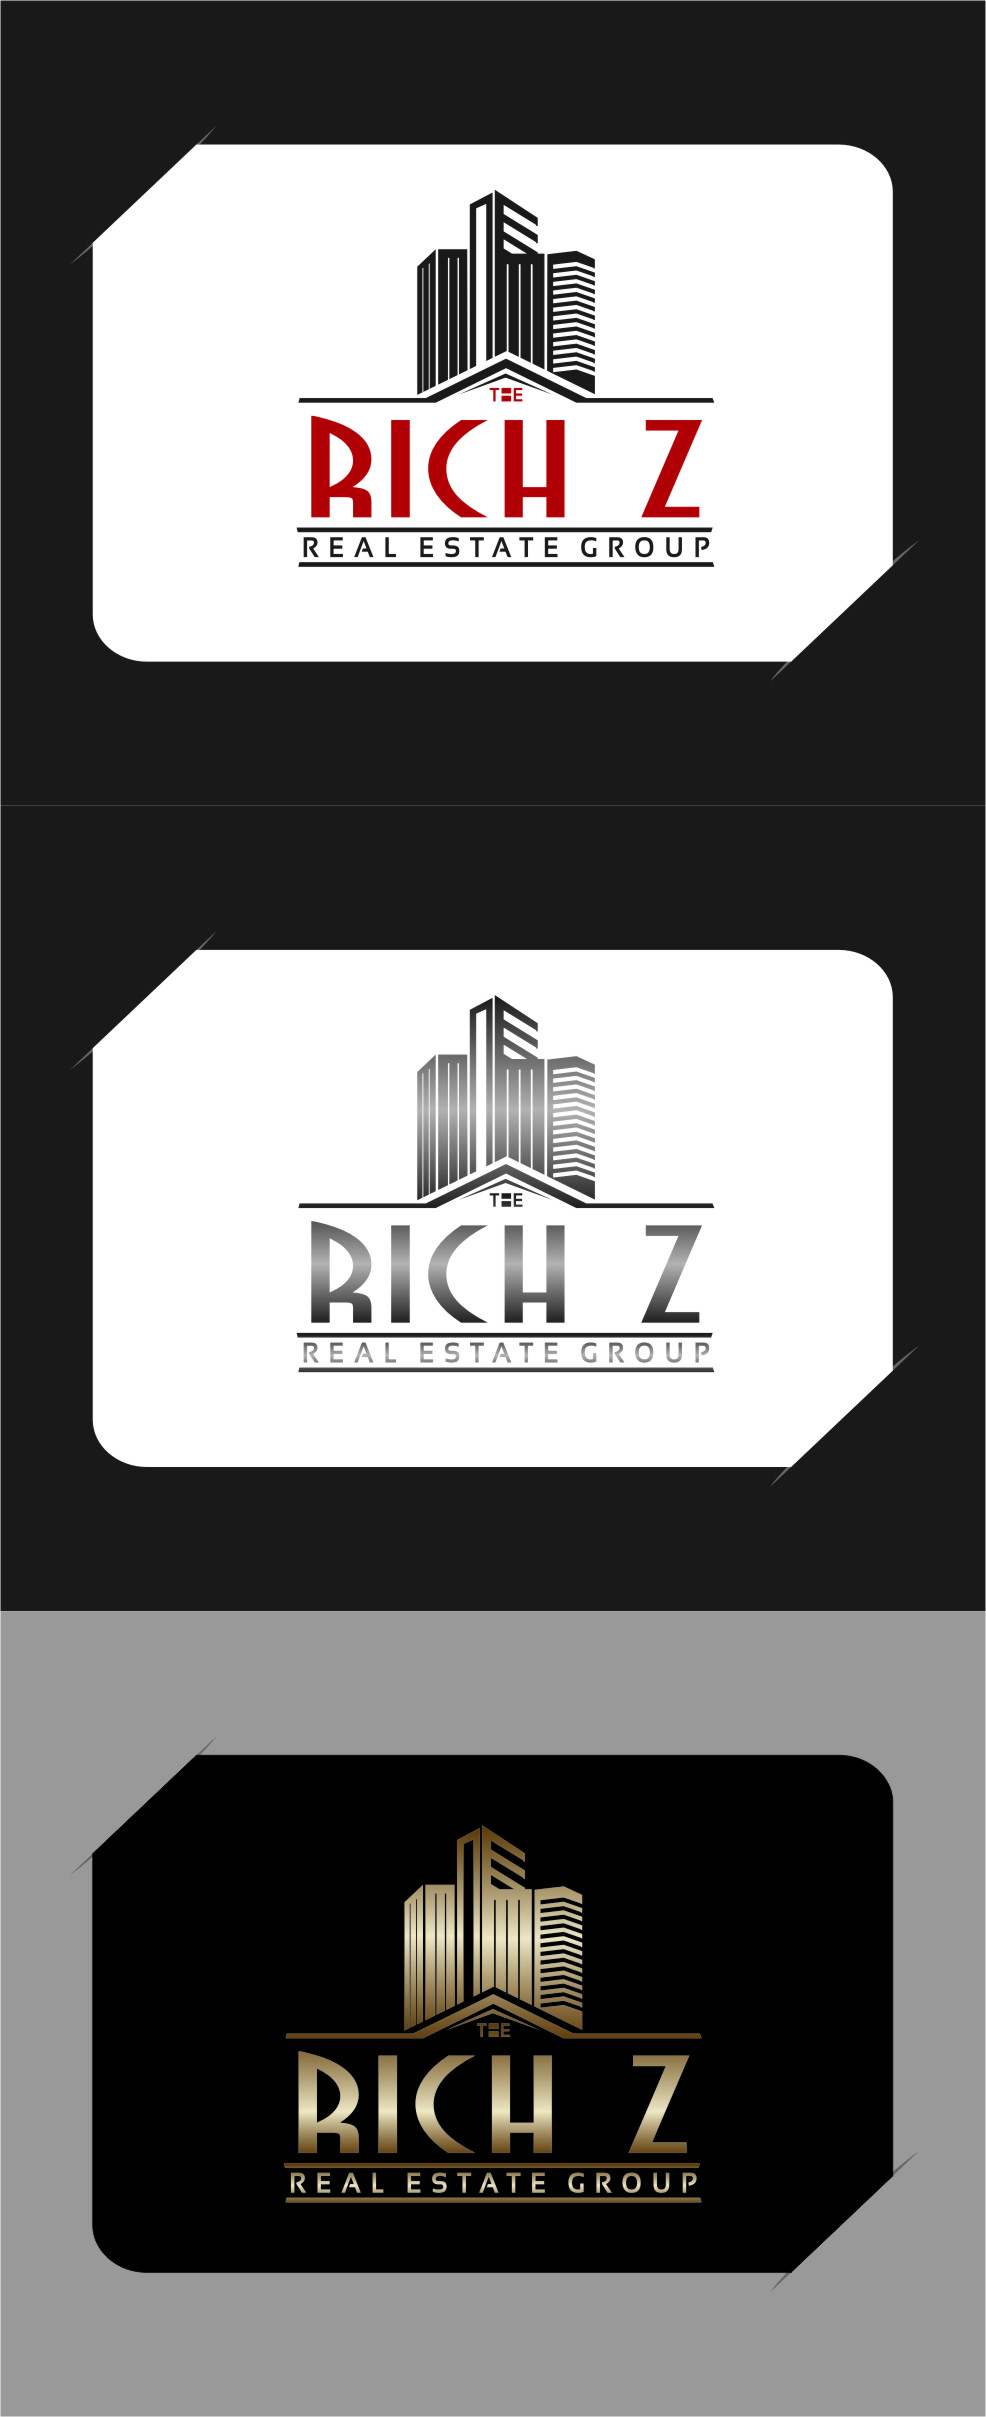 Logo Design by RasYa Muhammad Athaya - Entry No. 346 in the Logo Design Contest The Rich Z. Real Estate Group Logo Design.